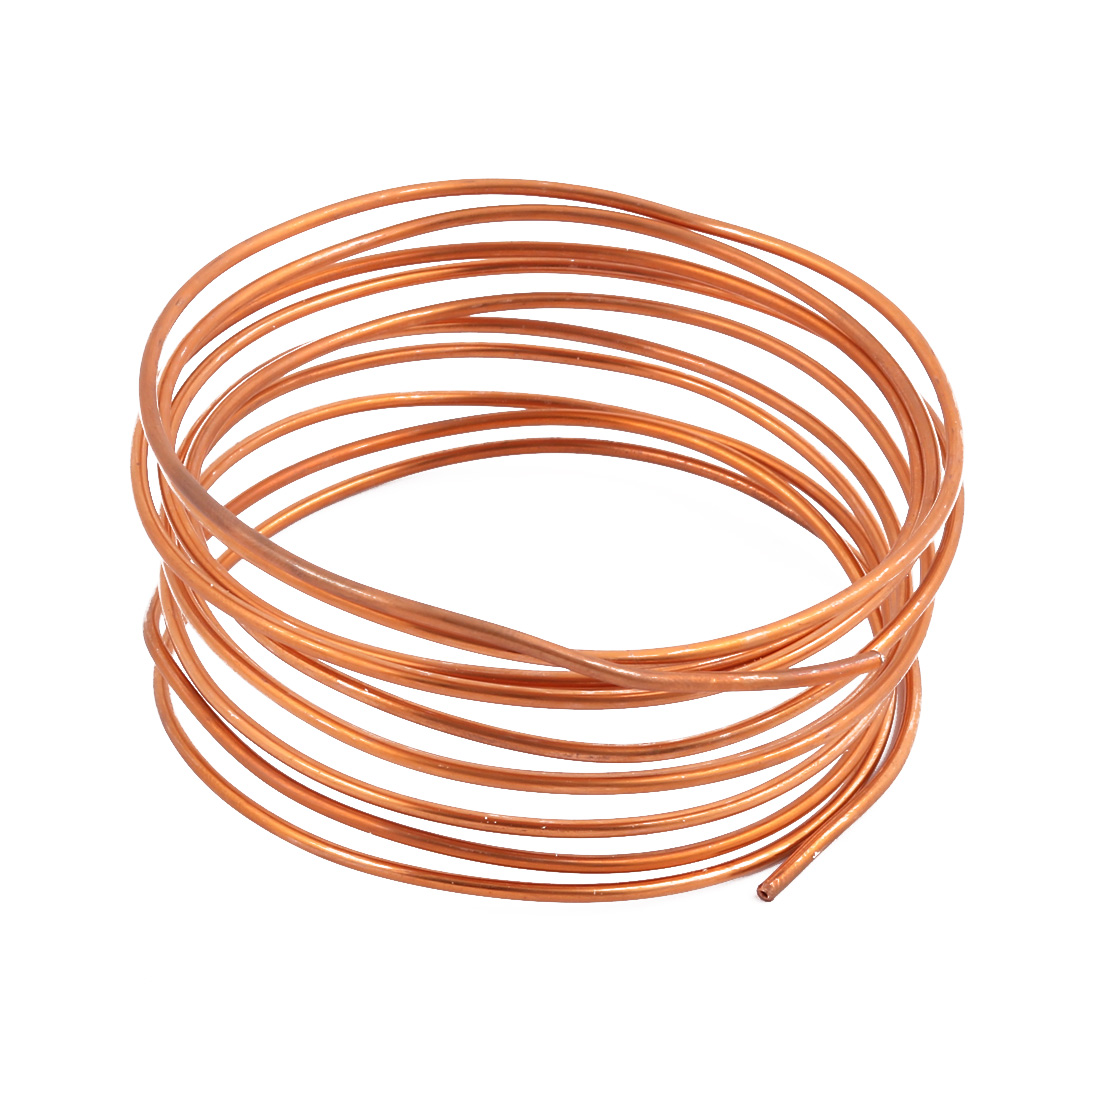 2.0mm Dia 2.4M 7.9Ft Length Copper Tone Refrigerator Refrigeration Tubing Coil